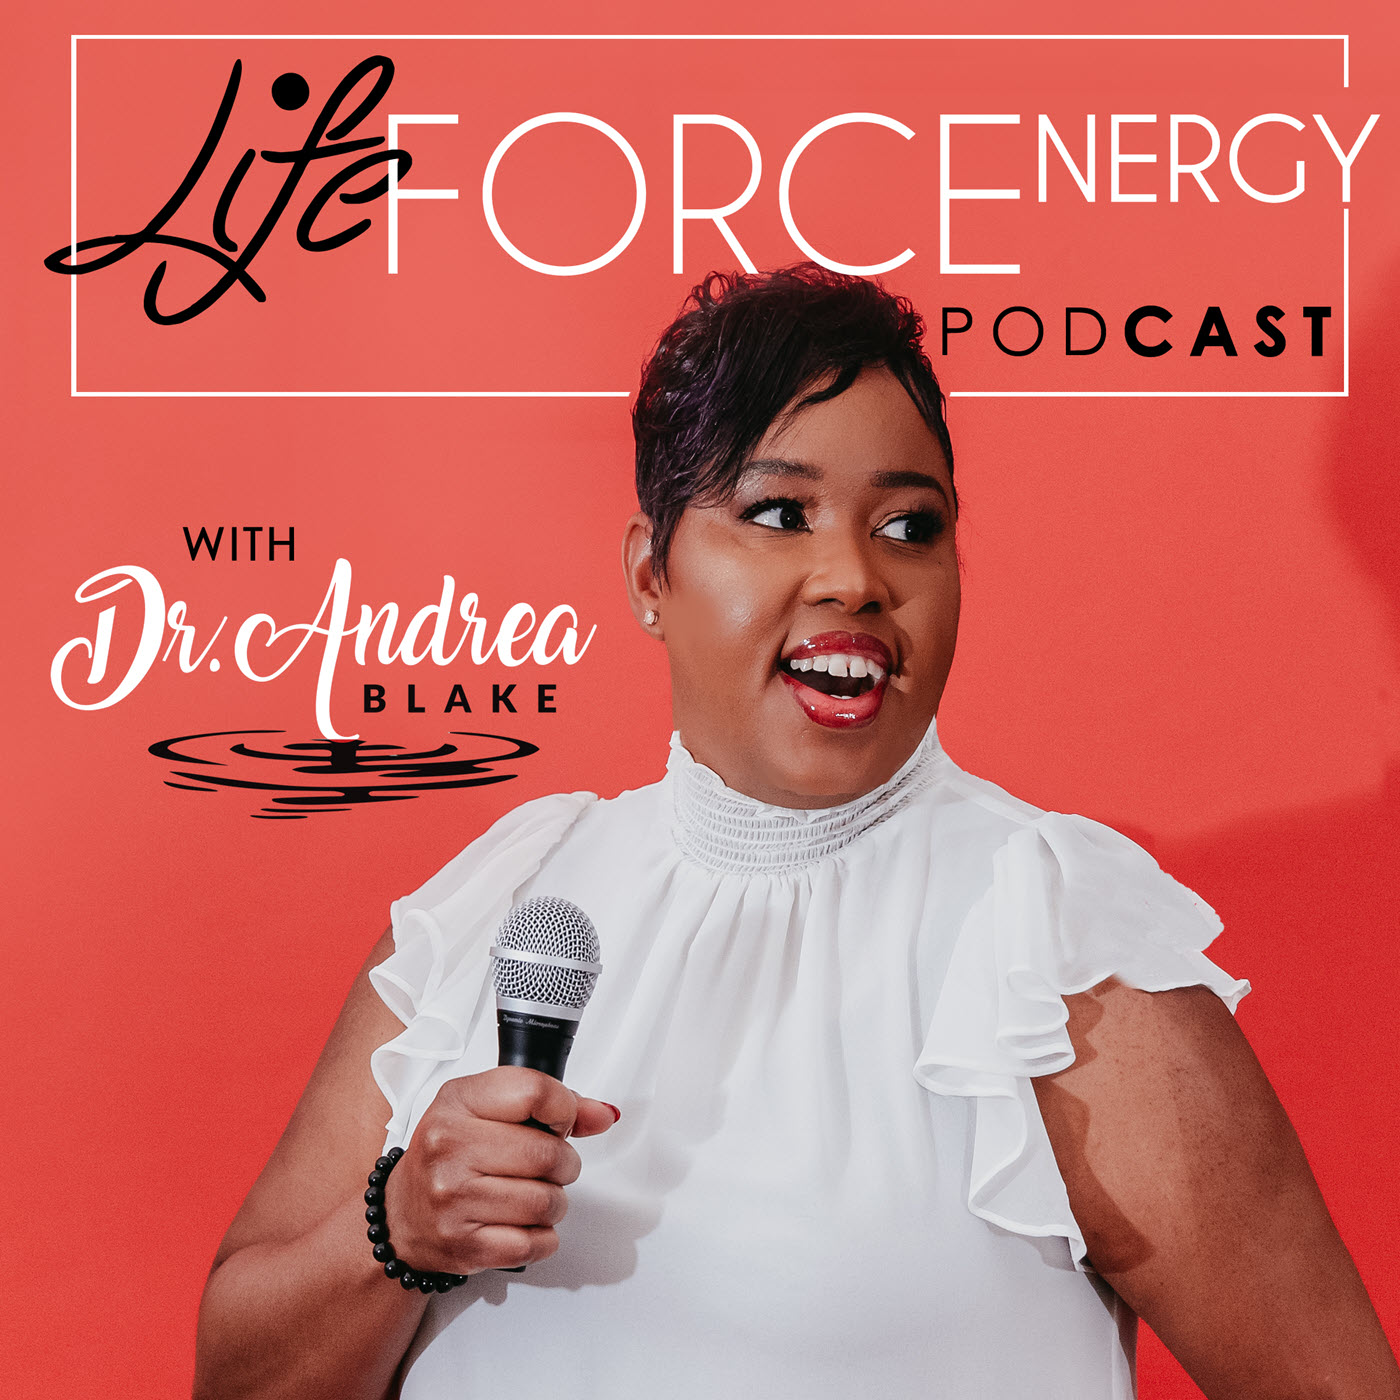 LifeForce Energy Podcast